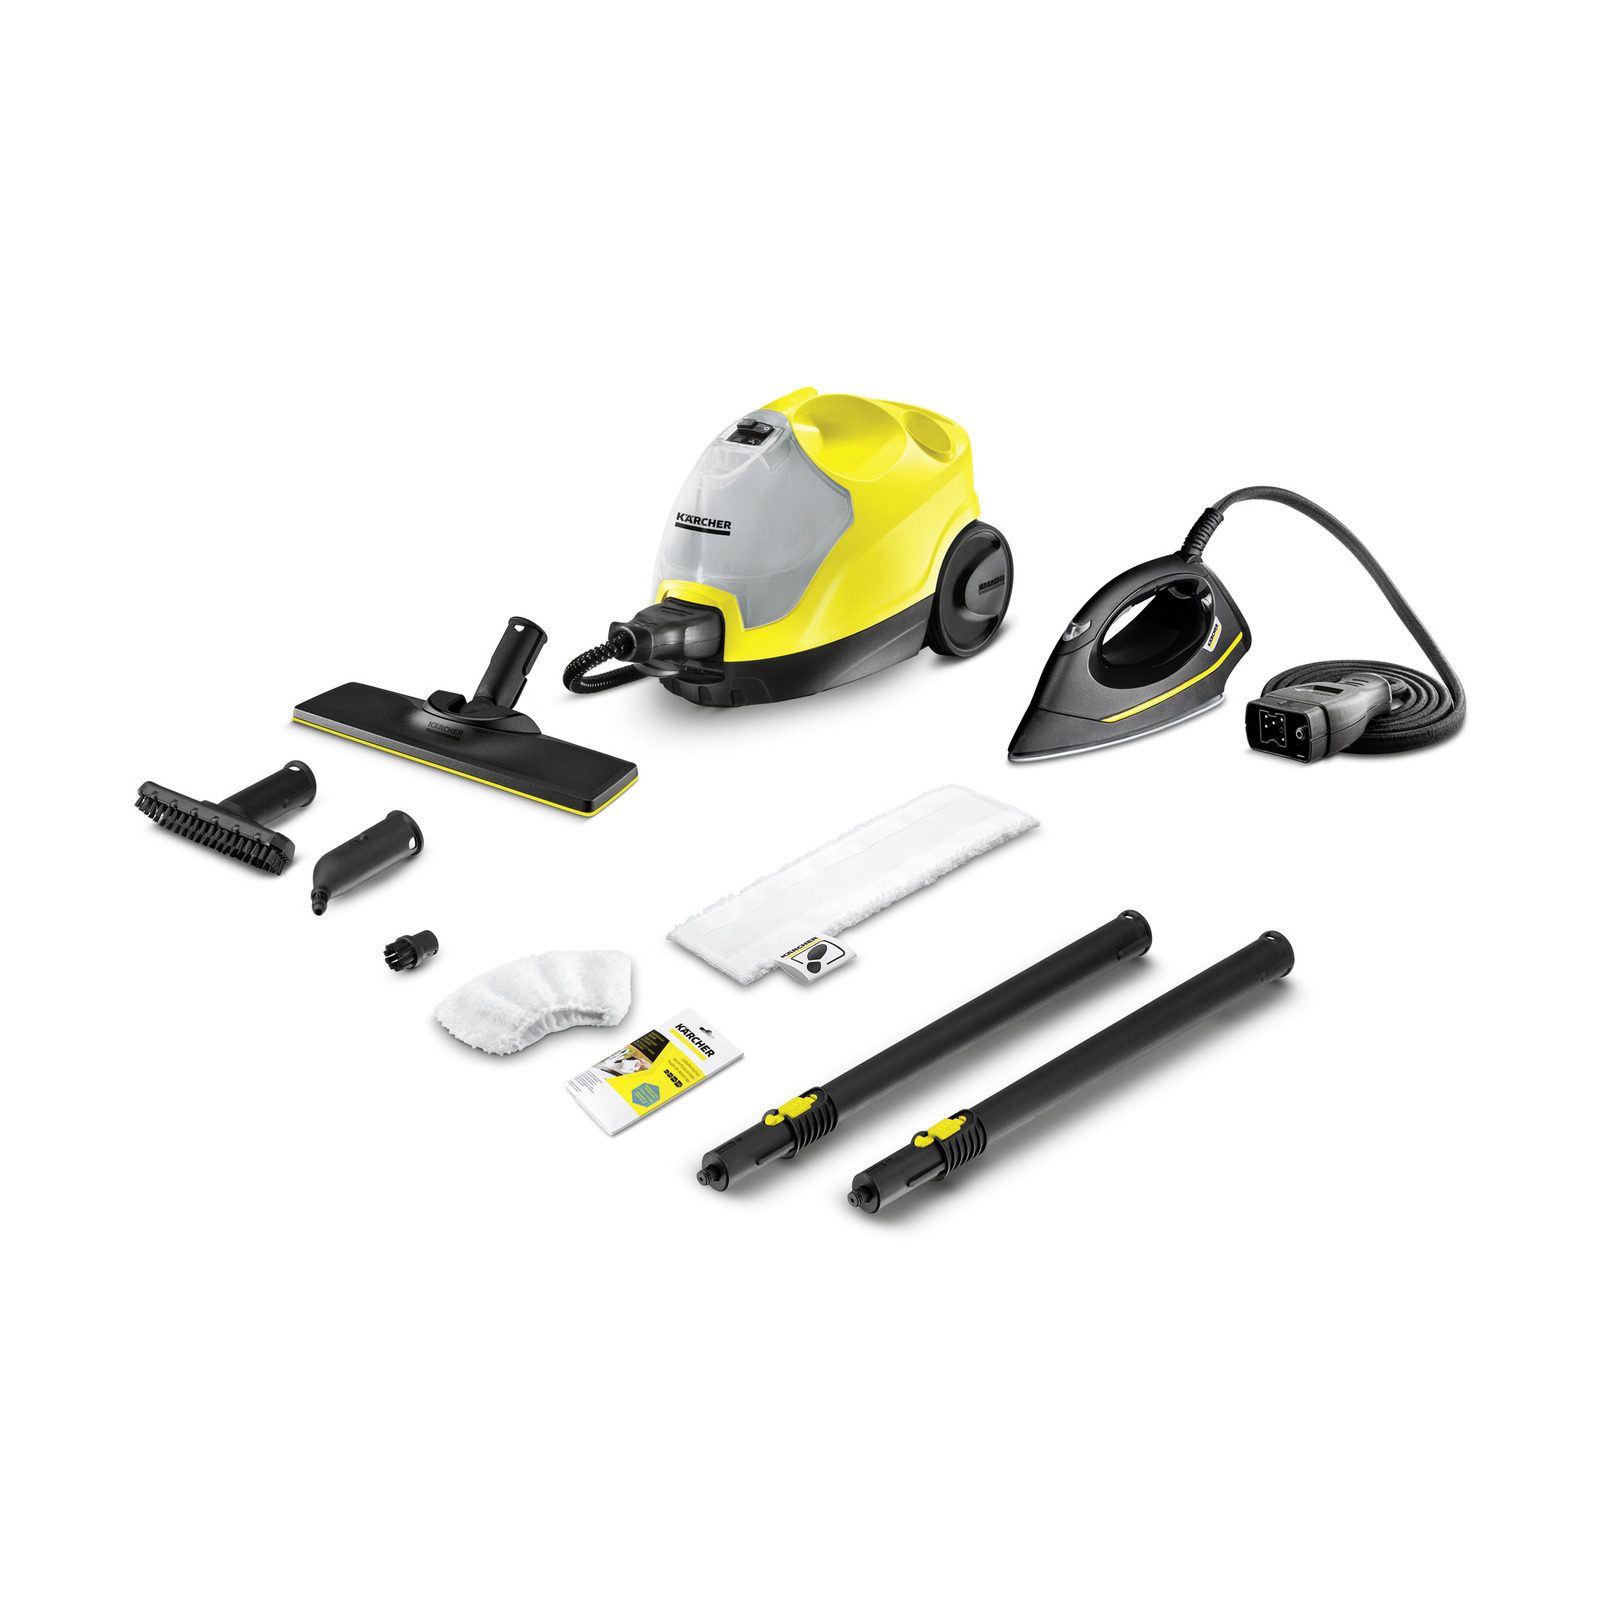 Extension Nozzle Small Round Brushes Kits for Karcher SC Series Steam Cleaning